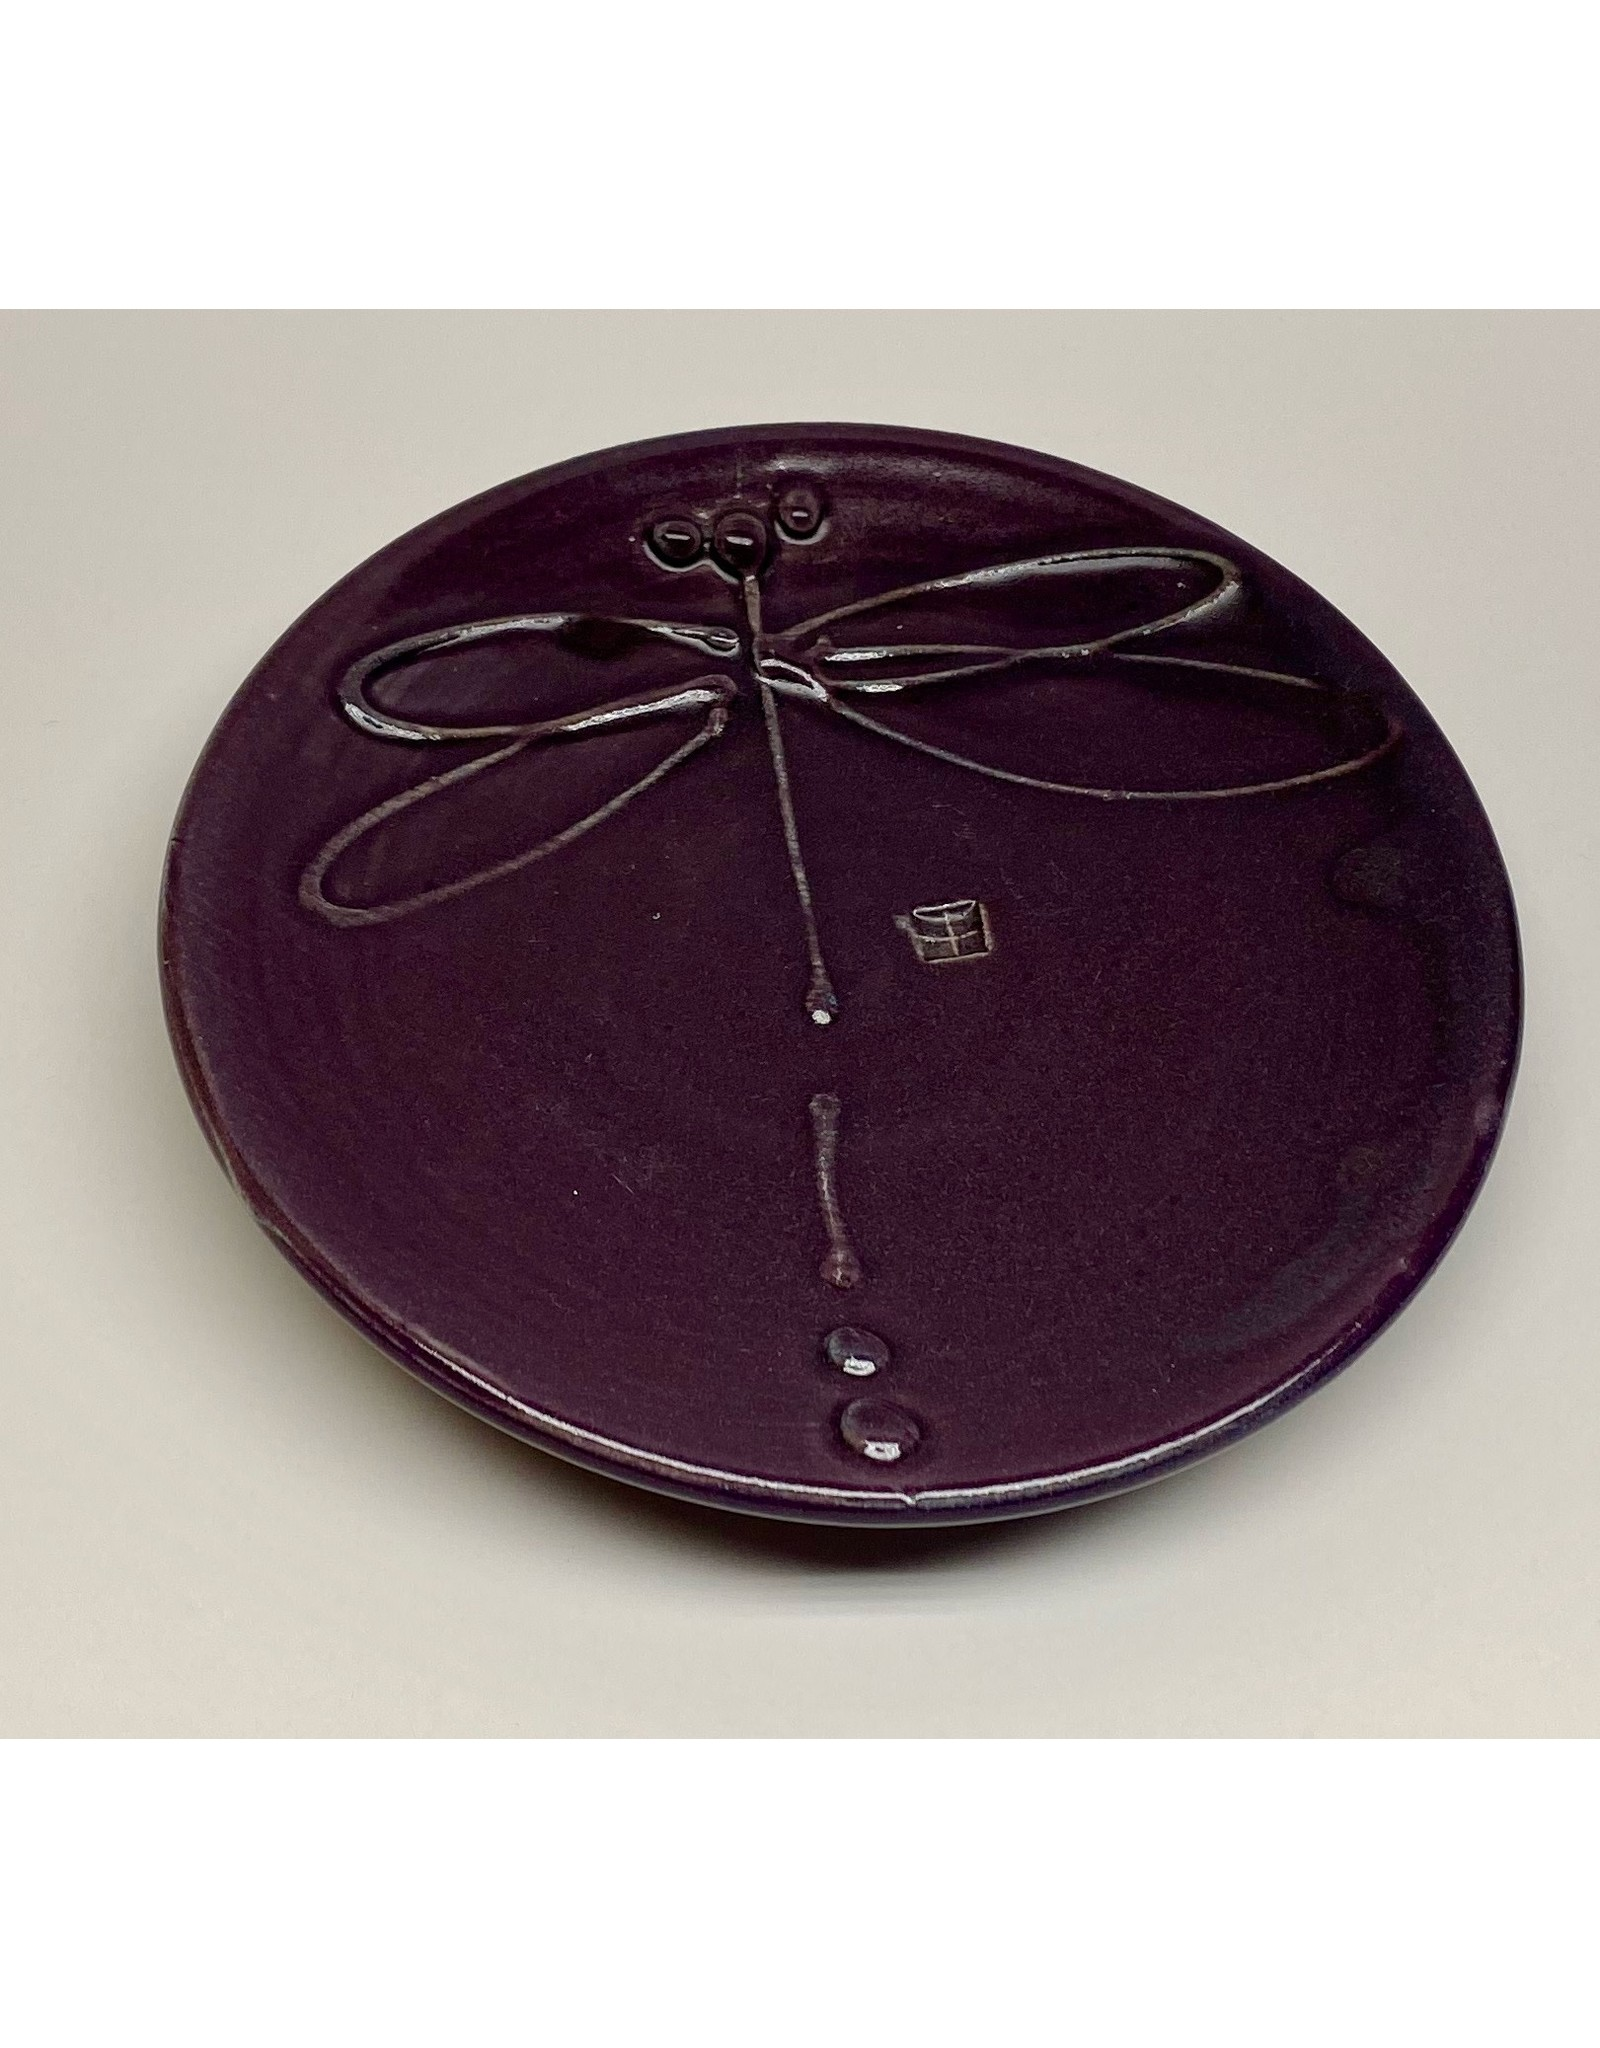 Five Finger Pottery Medium Plate (dragonfly)   Five Finger Pottery